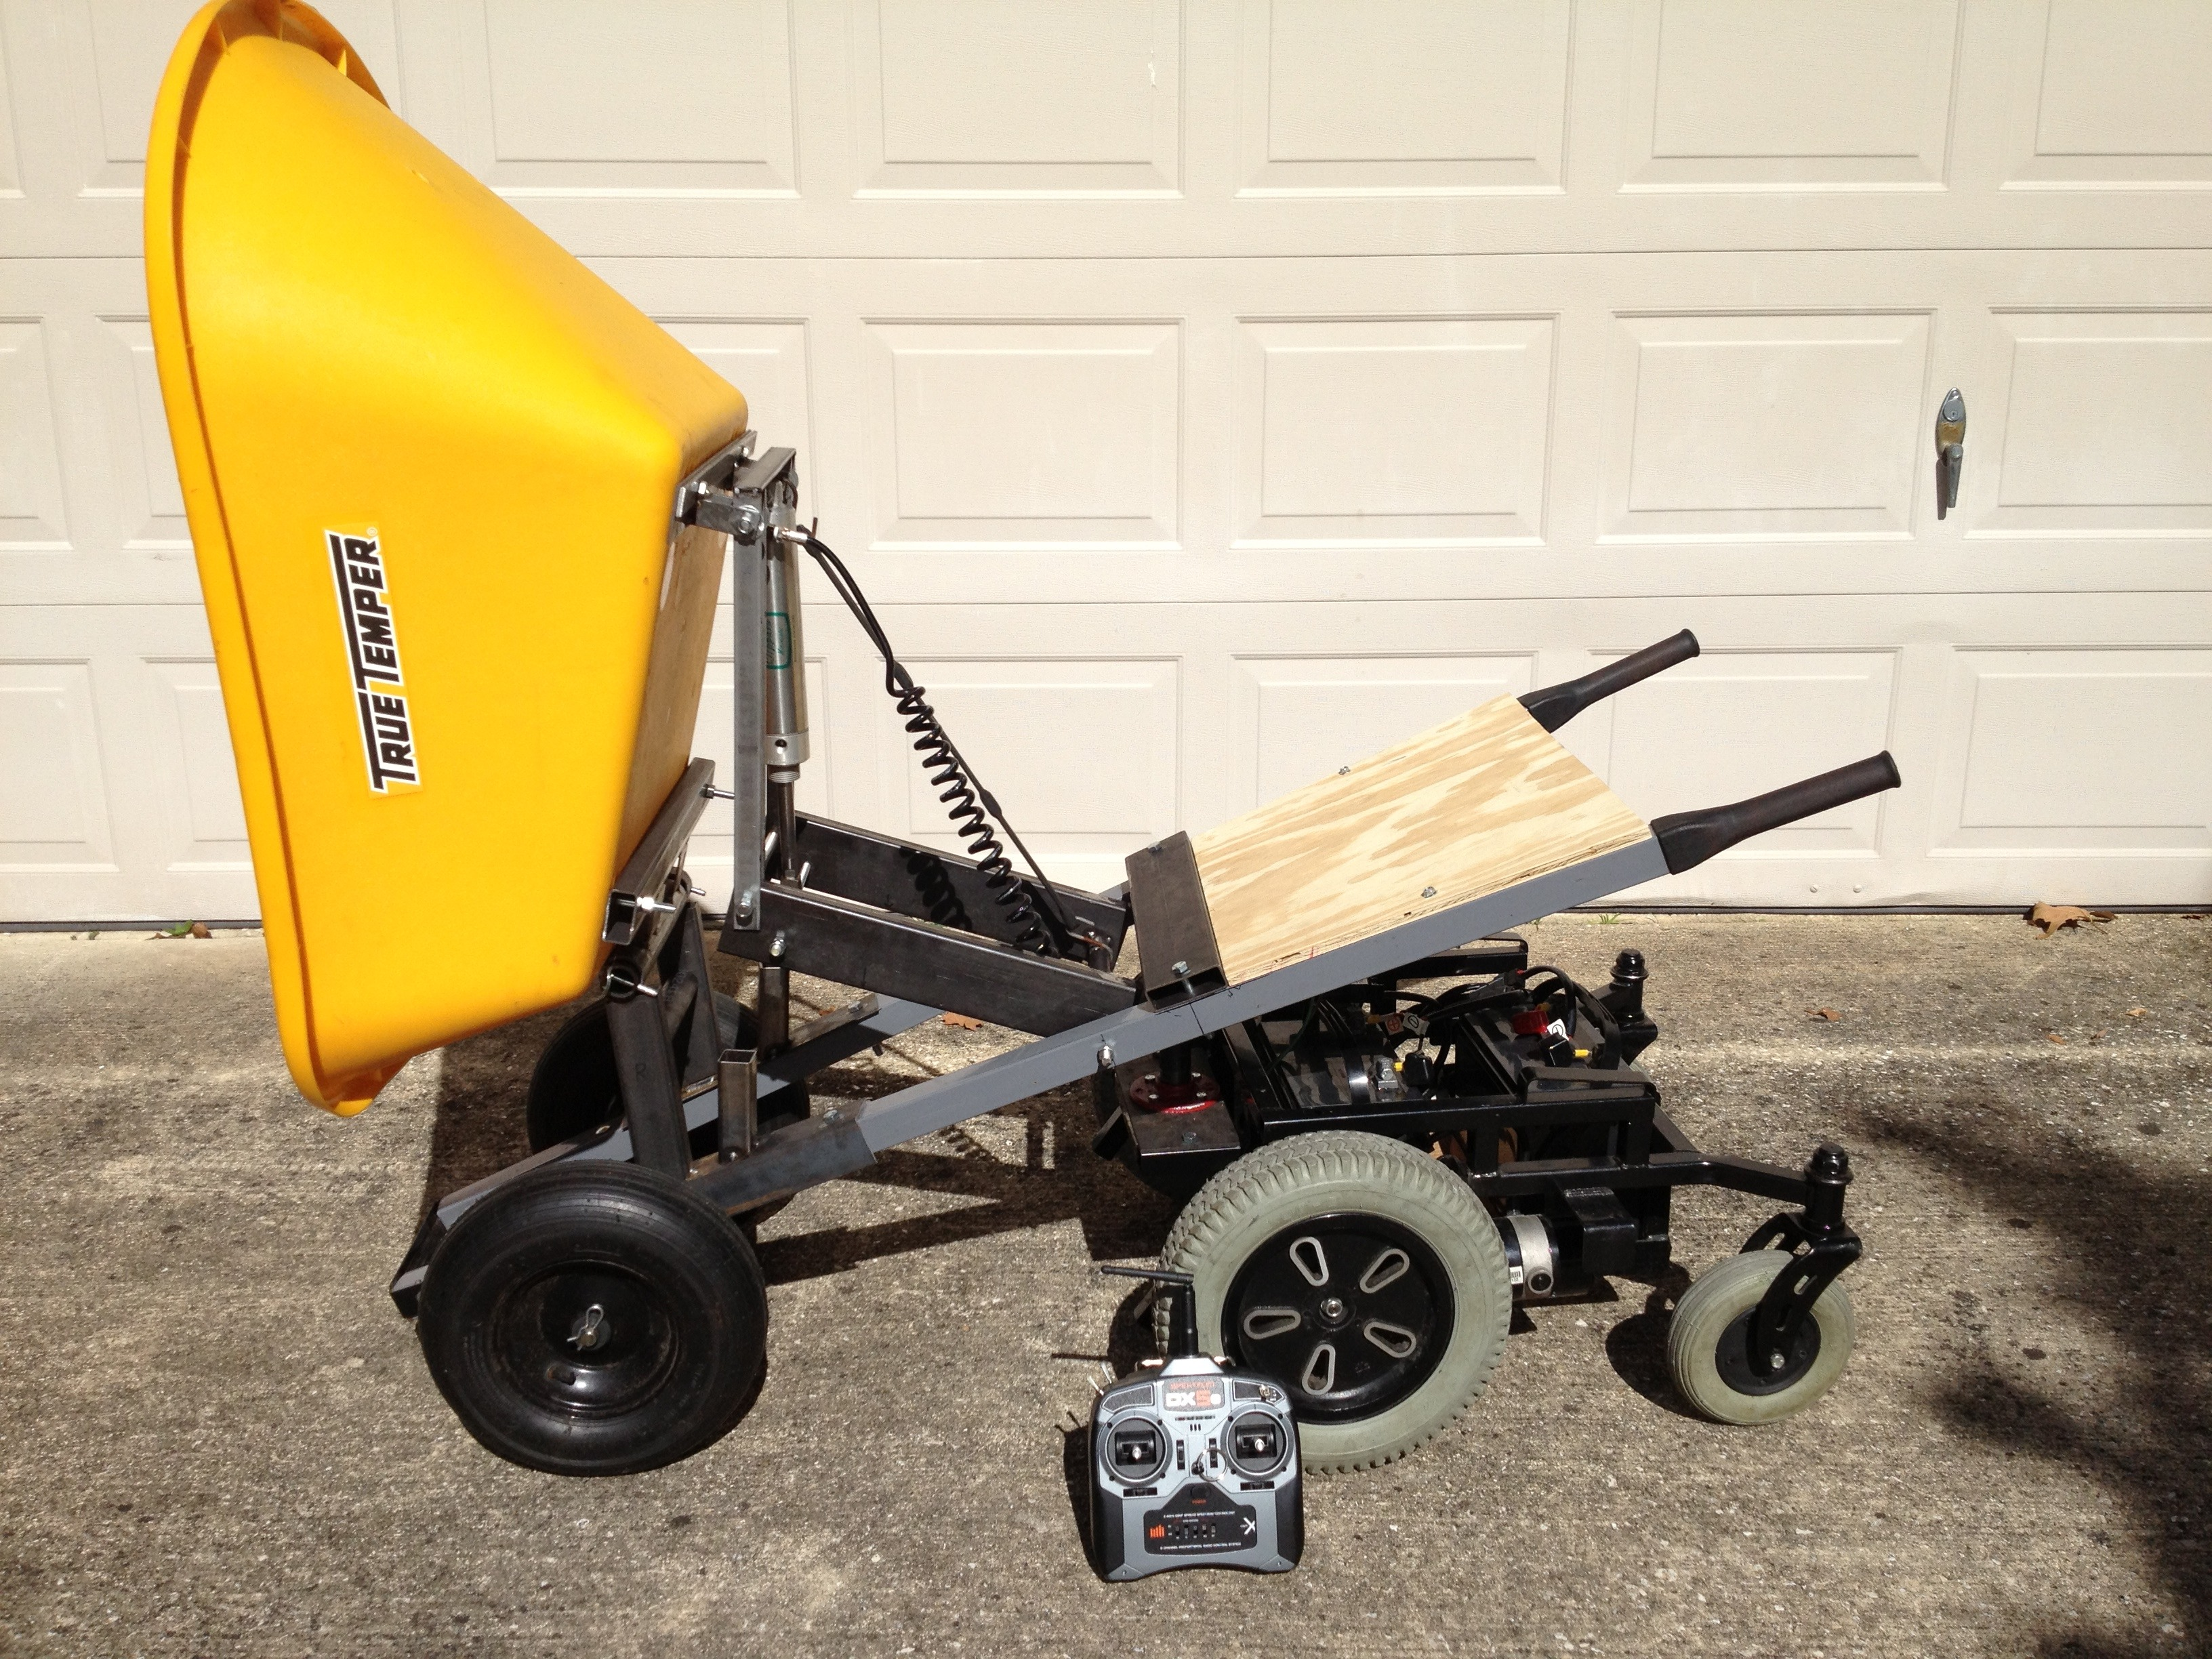 6-Wheeled R/C Wheelbarrow with Pneumatic Dump